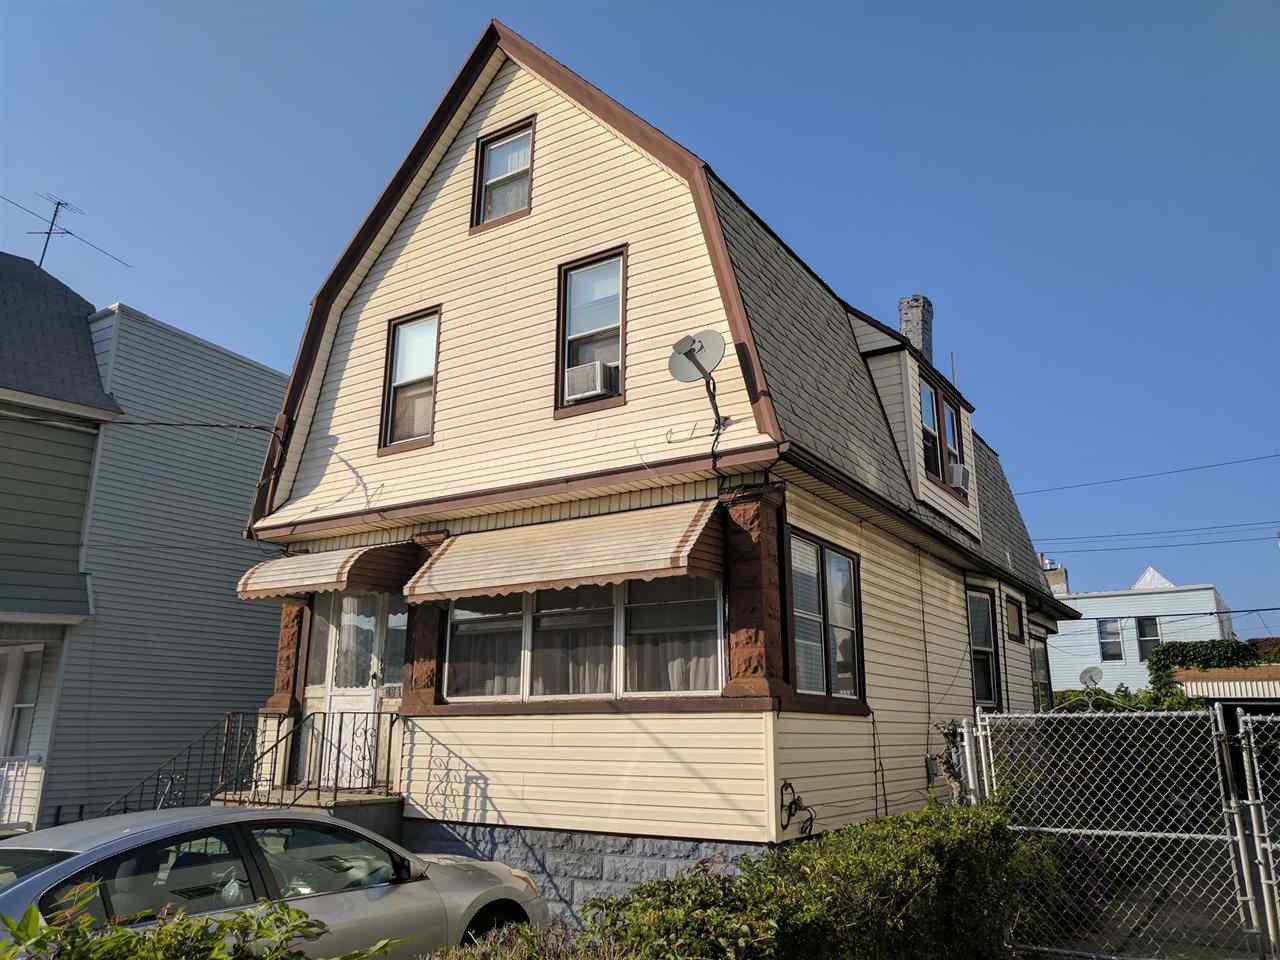 296 ARMSTRONG AVE, JC, Greenville, NJ 07305